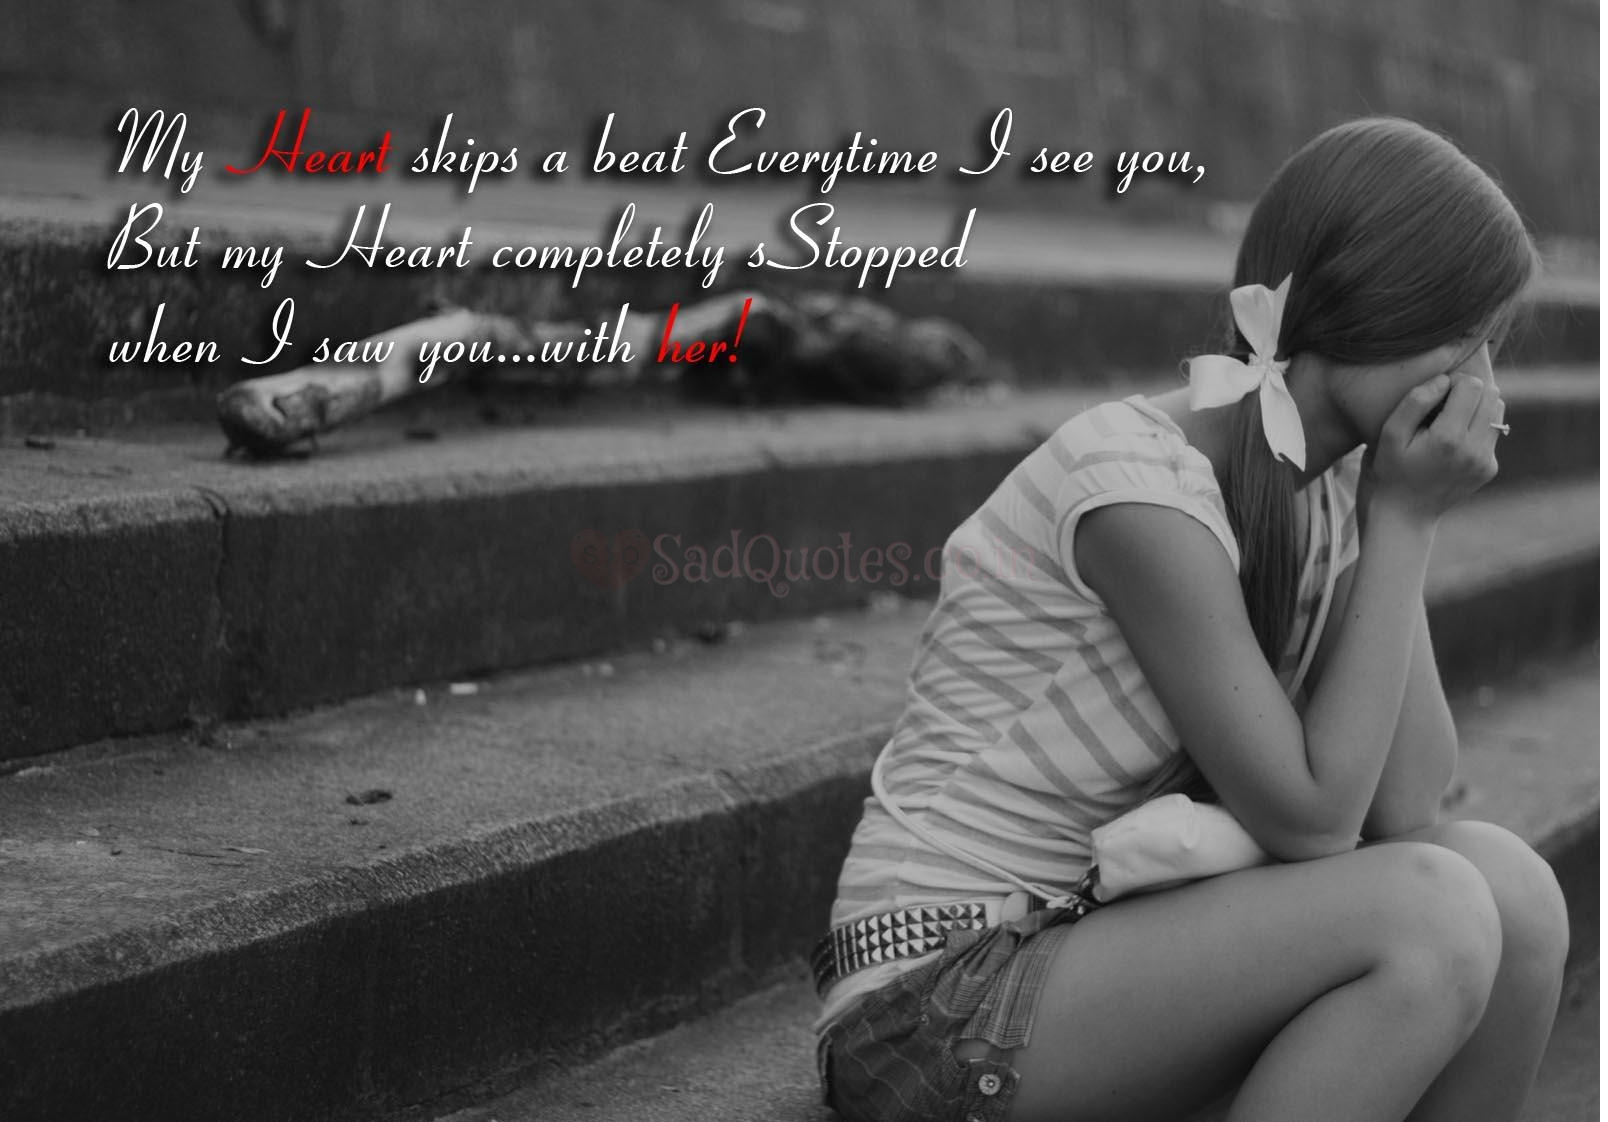 My heart skips a beat every time - Sad Love Quotes